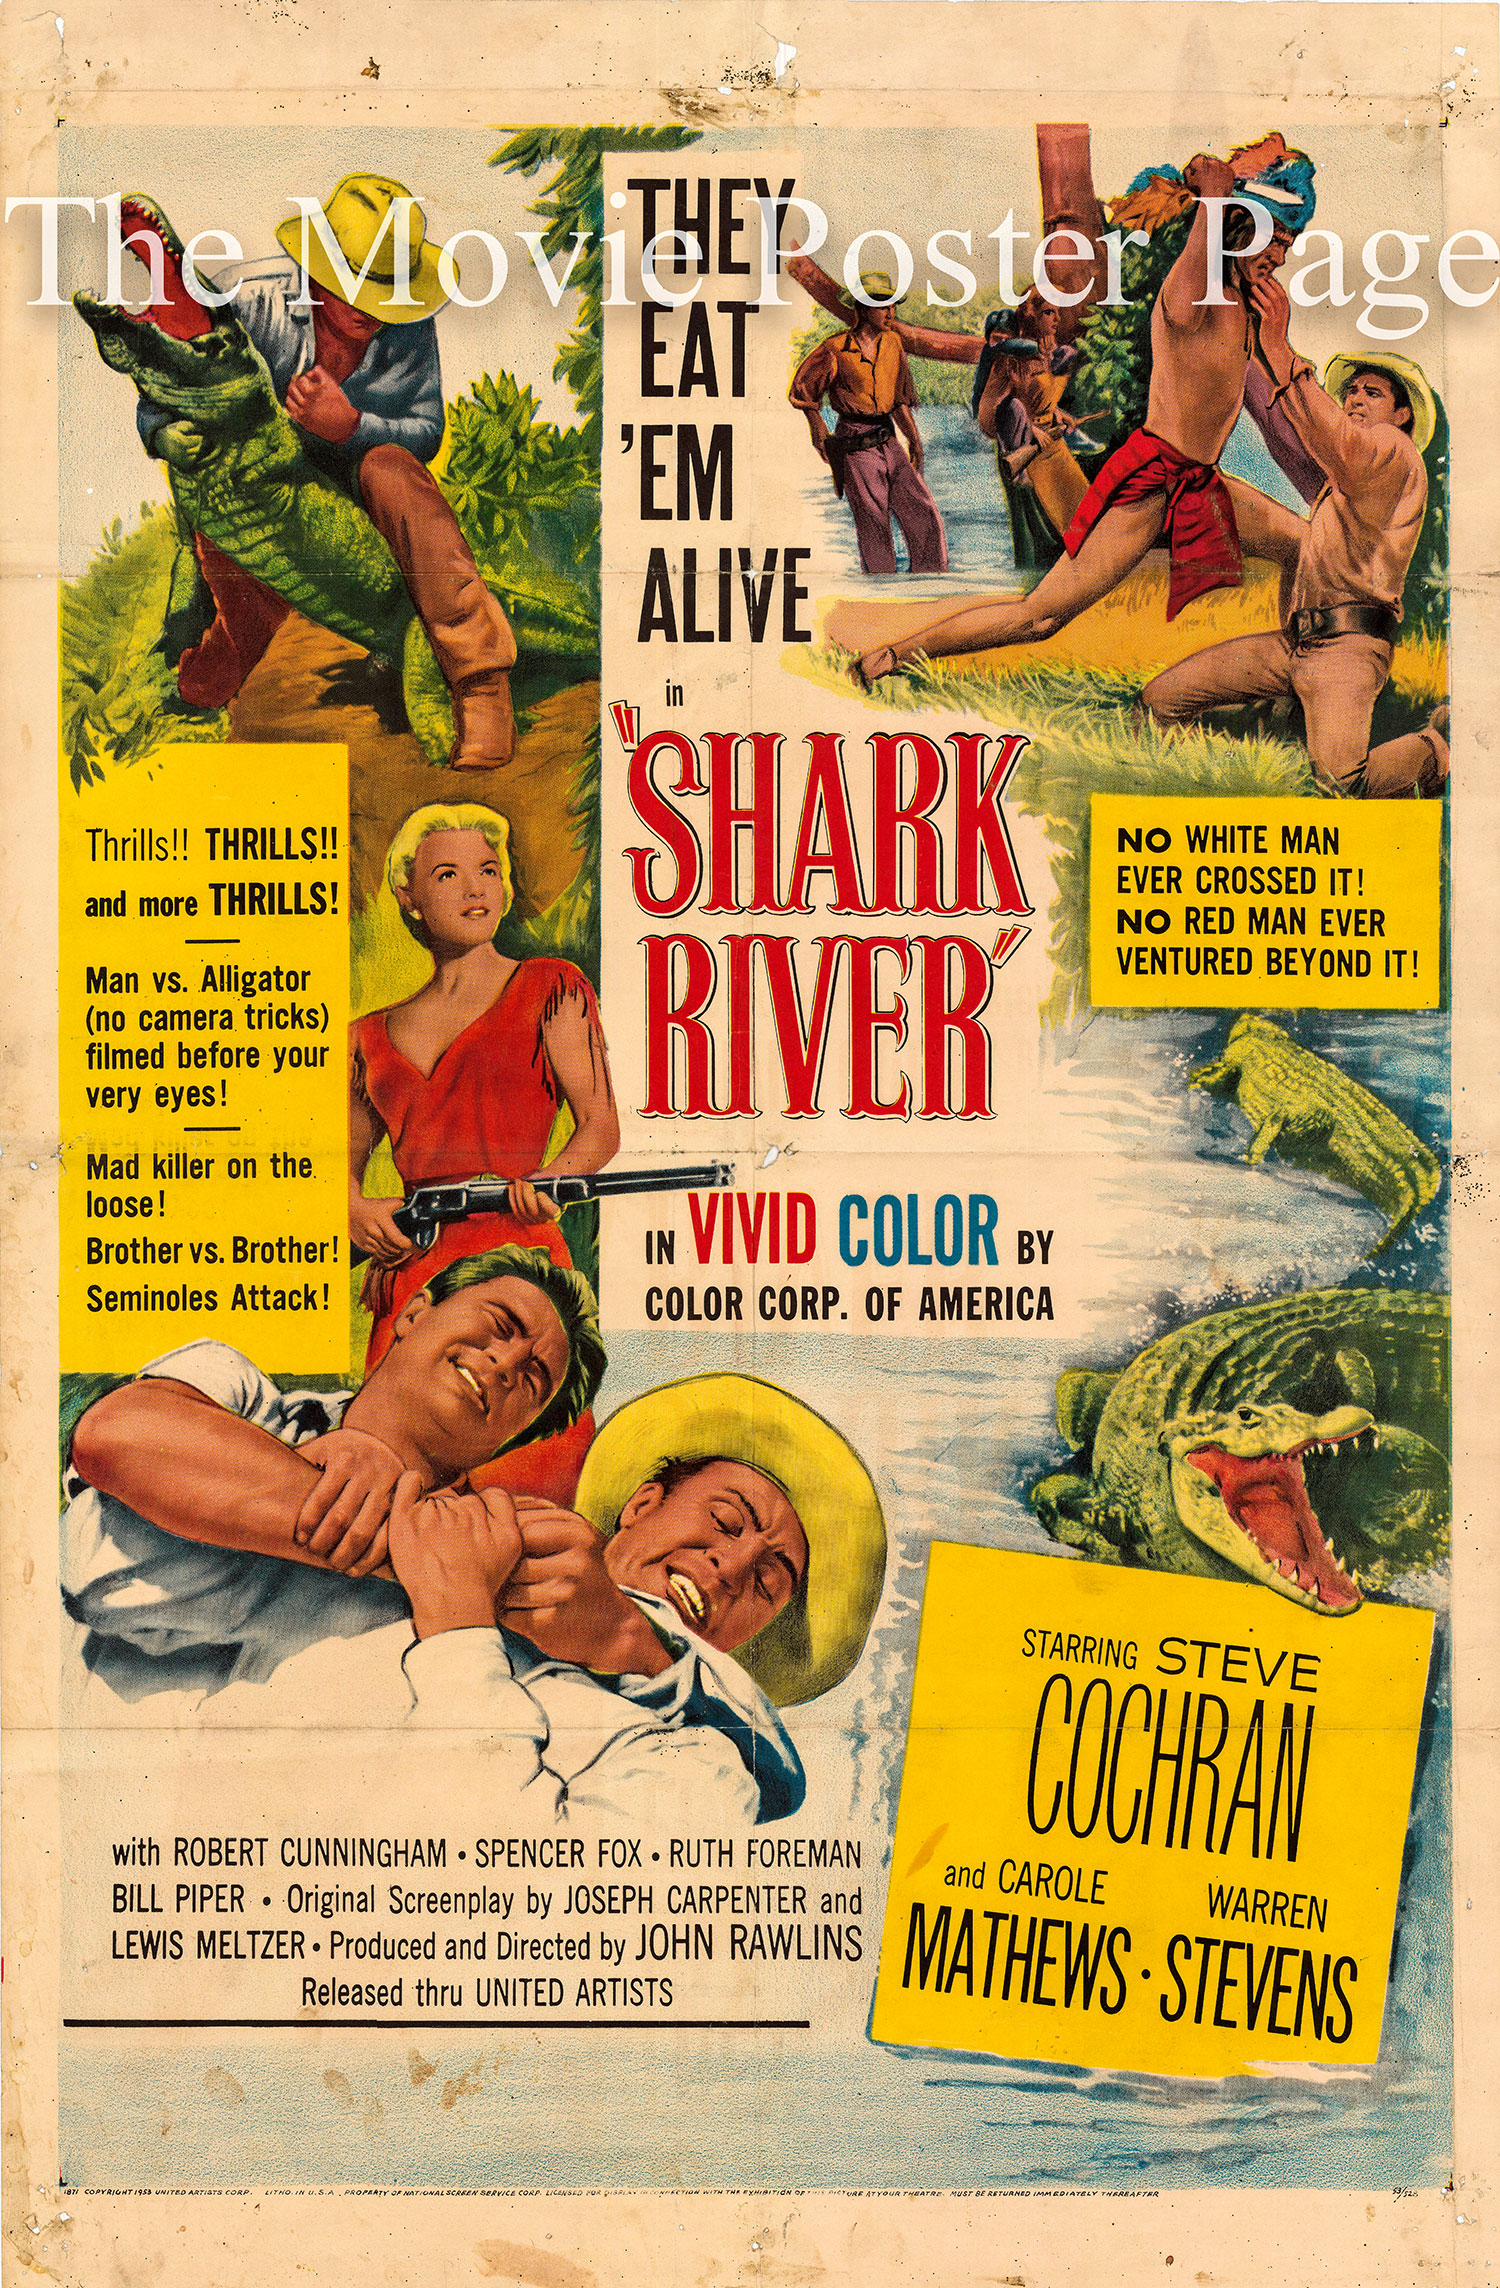 Pictured is a US one-sheet promotional poster for the 1953 John Rawlins film Shark River starring Steve Cochran.